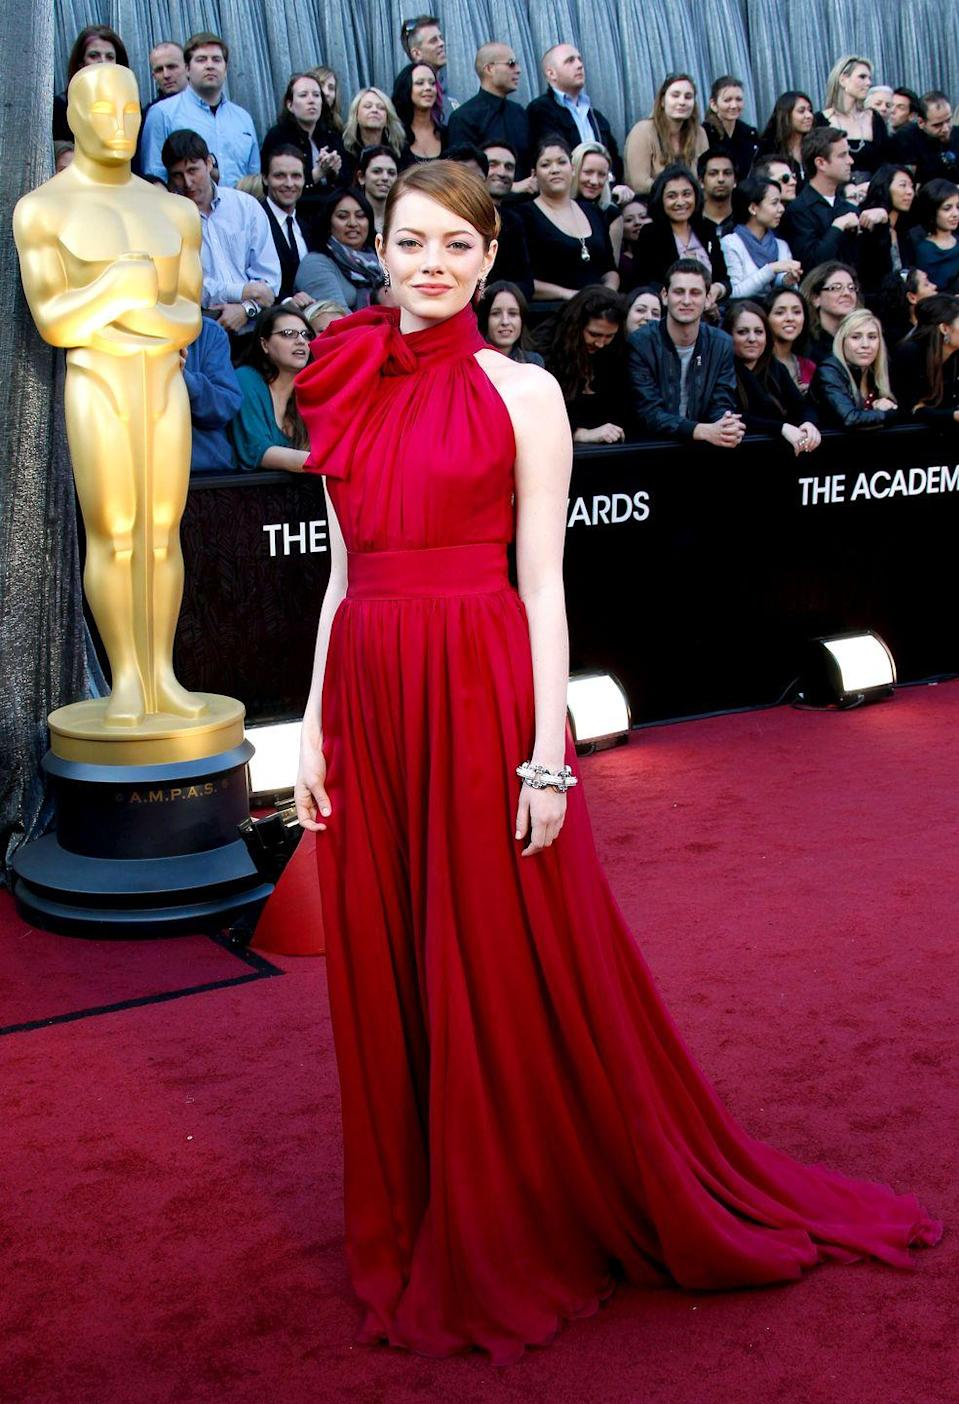 <p>This fuchsia Giambattista Valli gown featuring a cinched waist and dramatic pussybow was such a stunner in 2012. She presented the award for Best Visual Effects with Ben Stiller later on stage. </p>